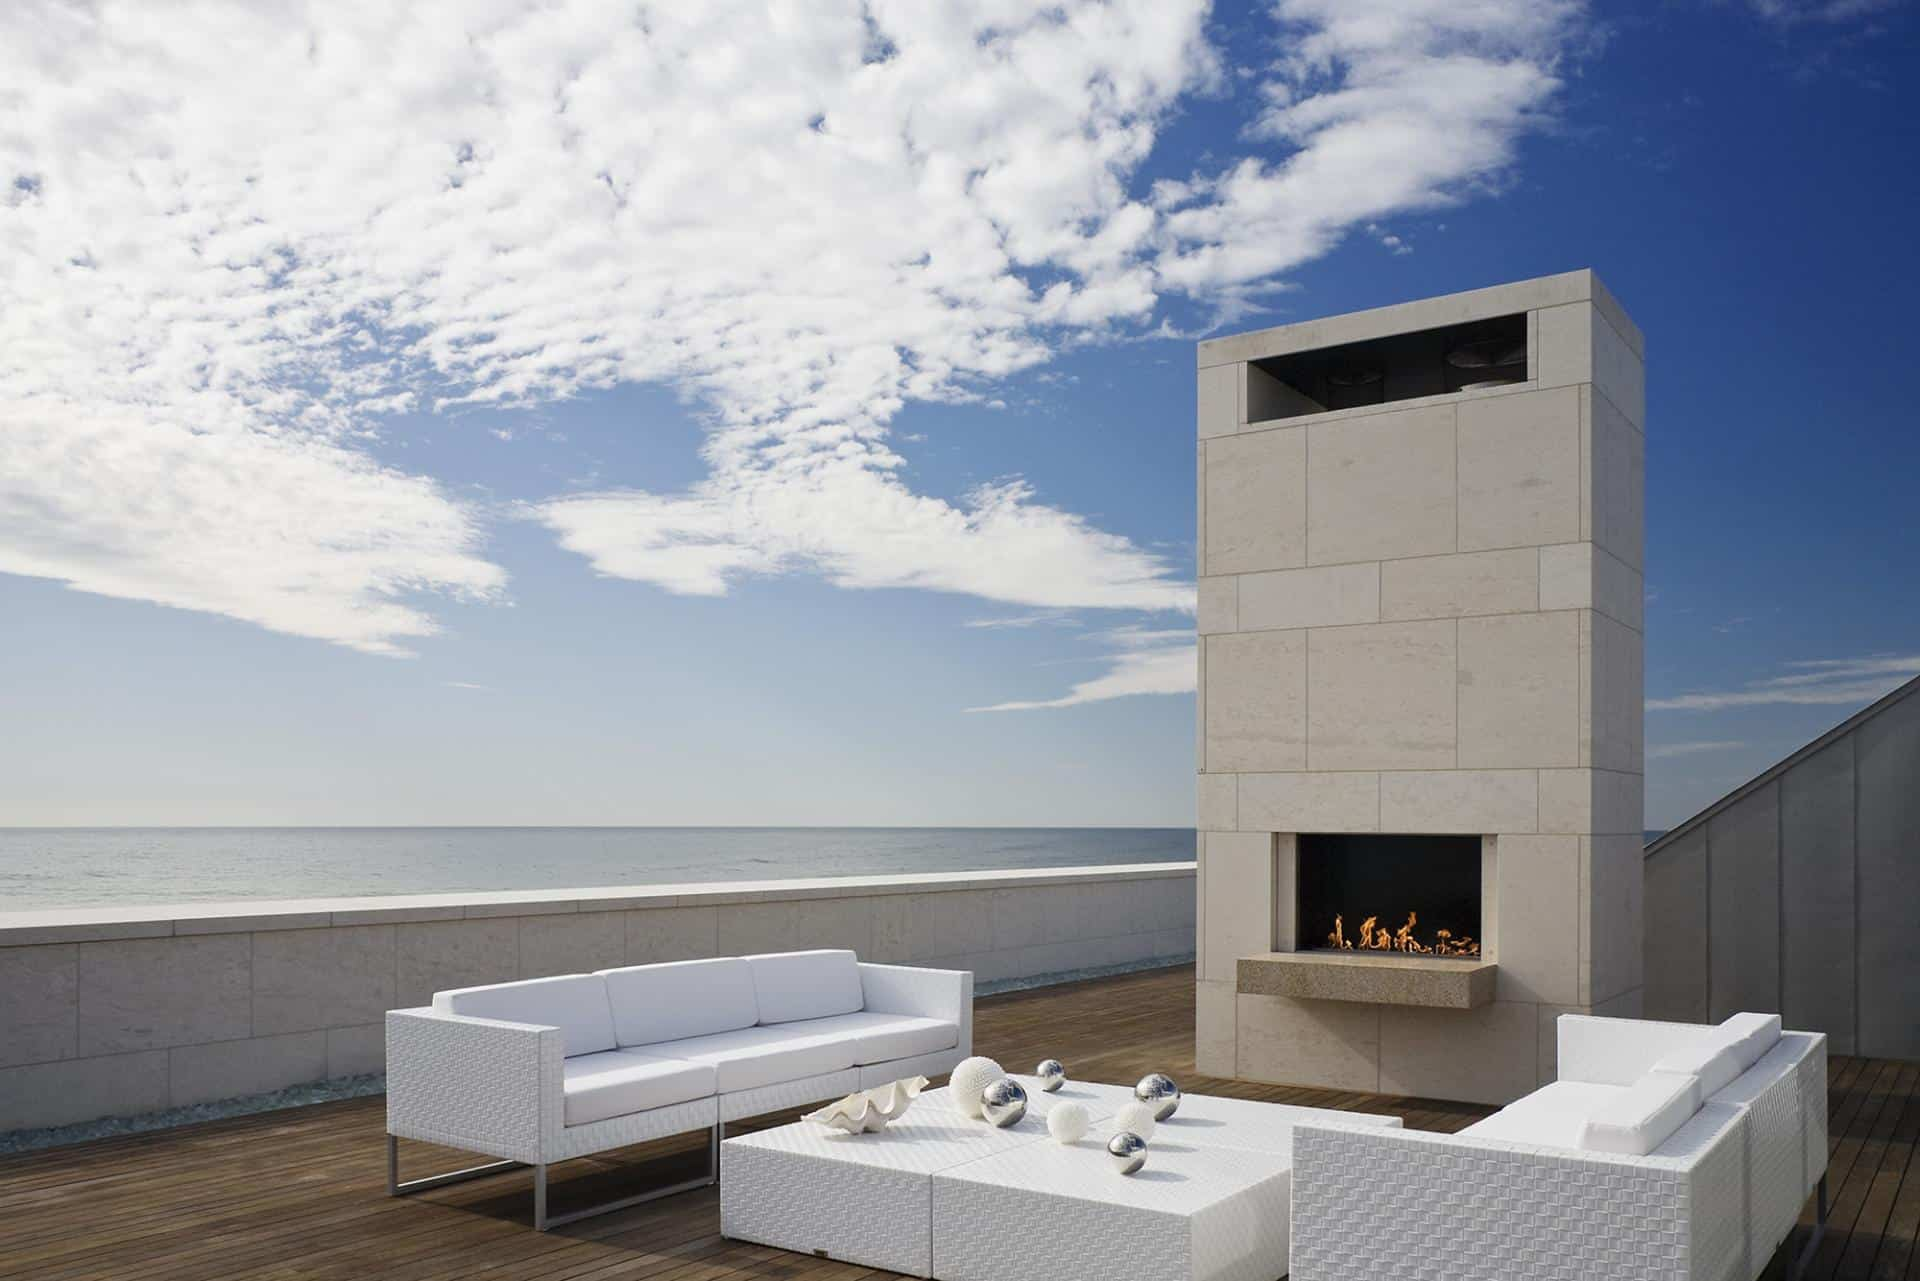 Oceanside Home Has Teak Walls A Pool And Rooftop Fireplace